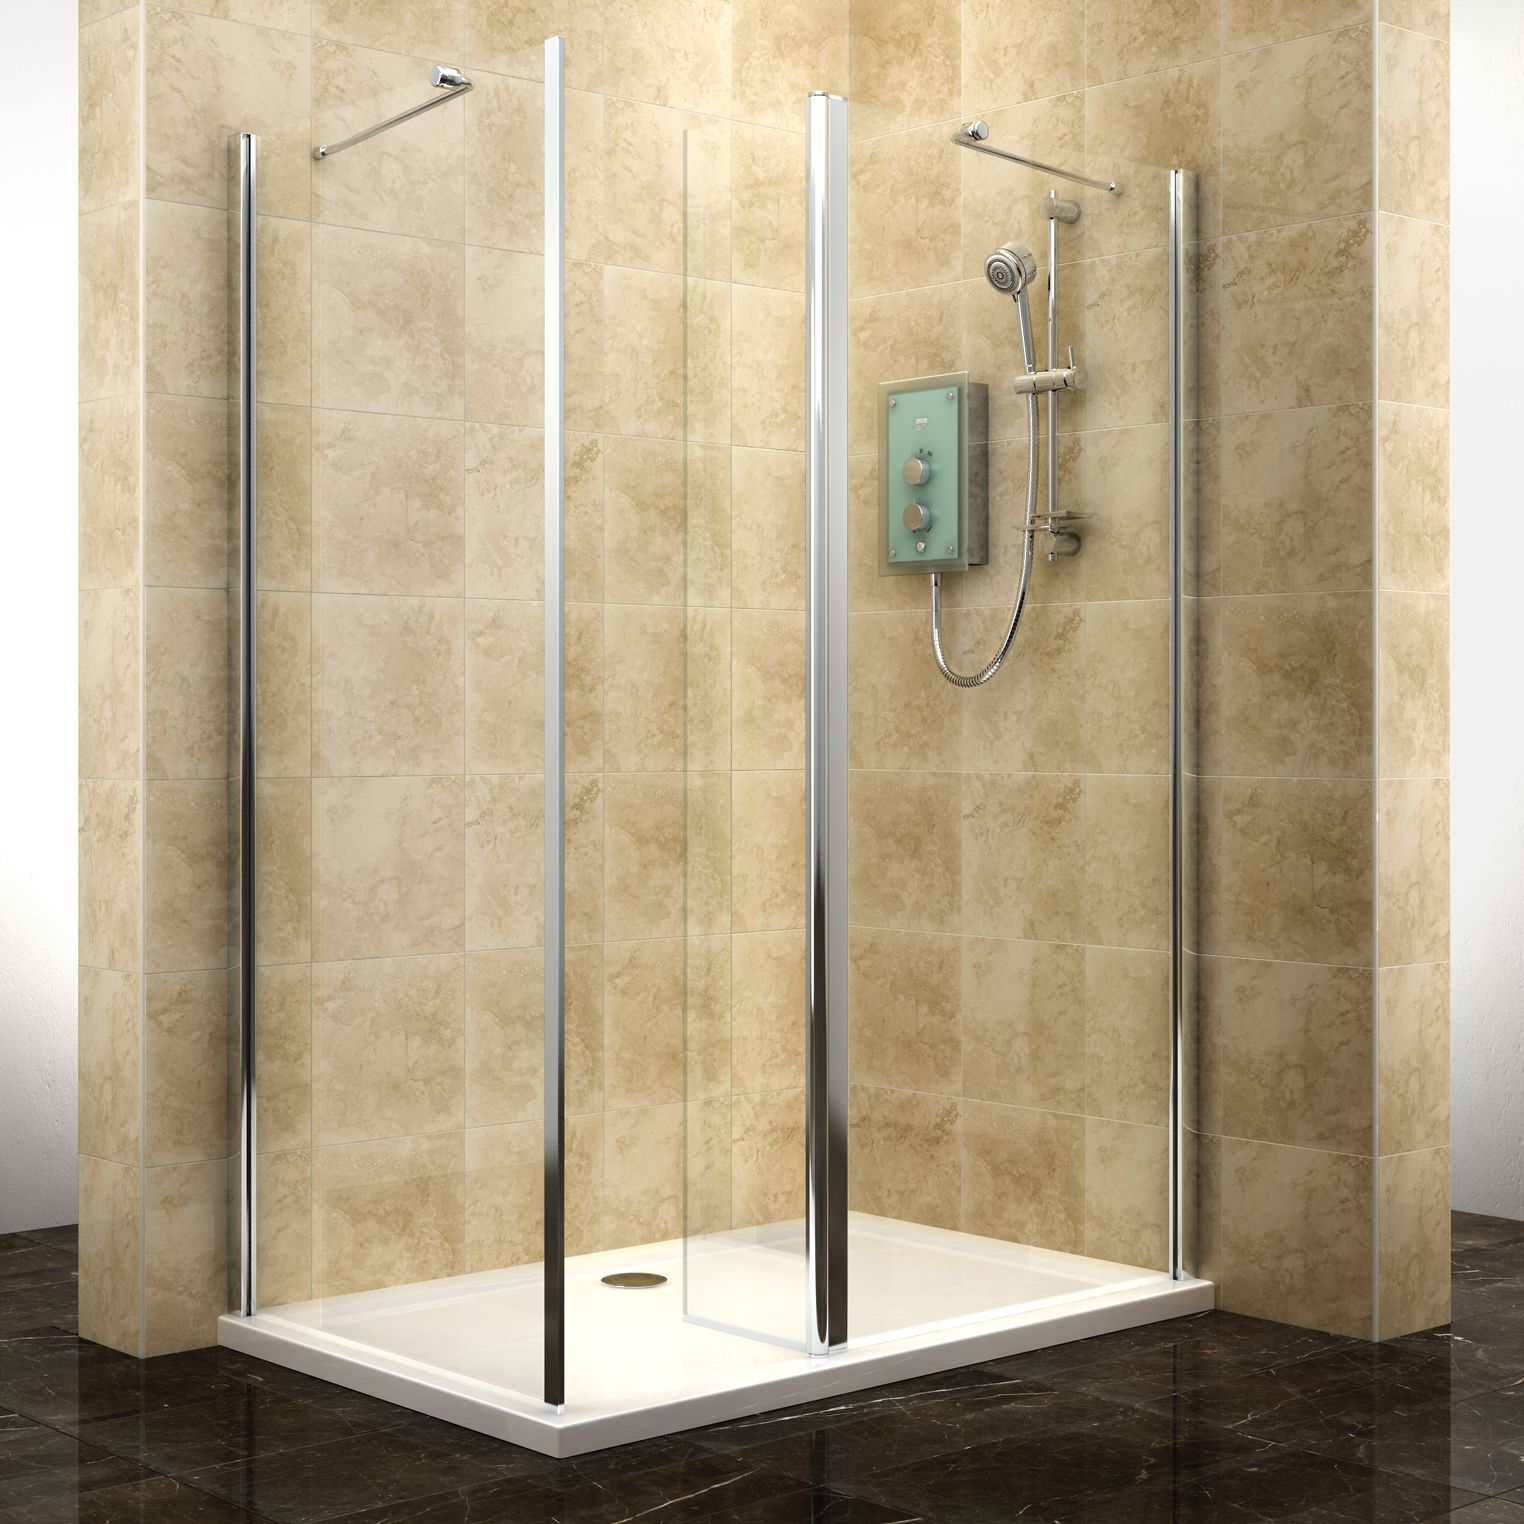 Cooke & Lewis Deluvio Rectangular Walk-In Entryshower Enclosure with Pivot  Splash Panel with Walk-In Entry (W)1200mm (D)800mm | Departments | DIY at  B&Q.